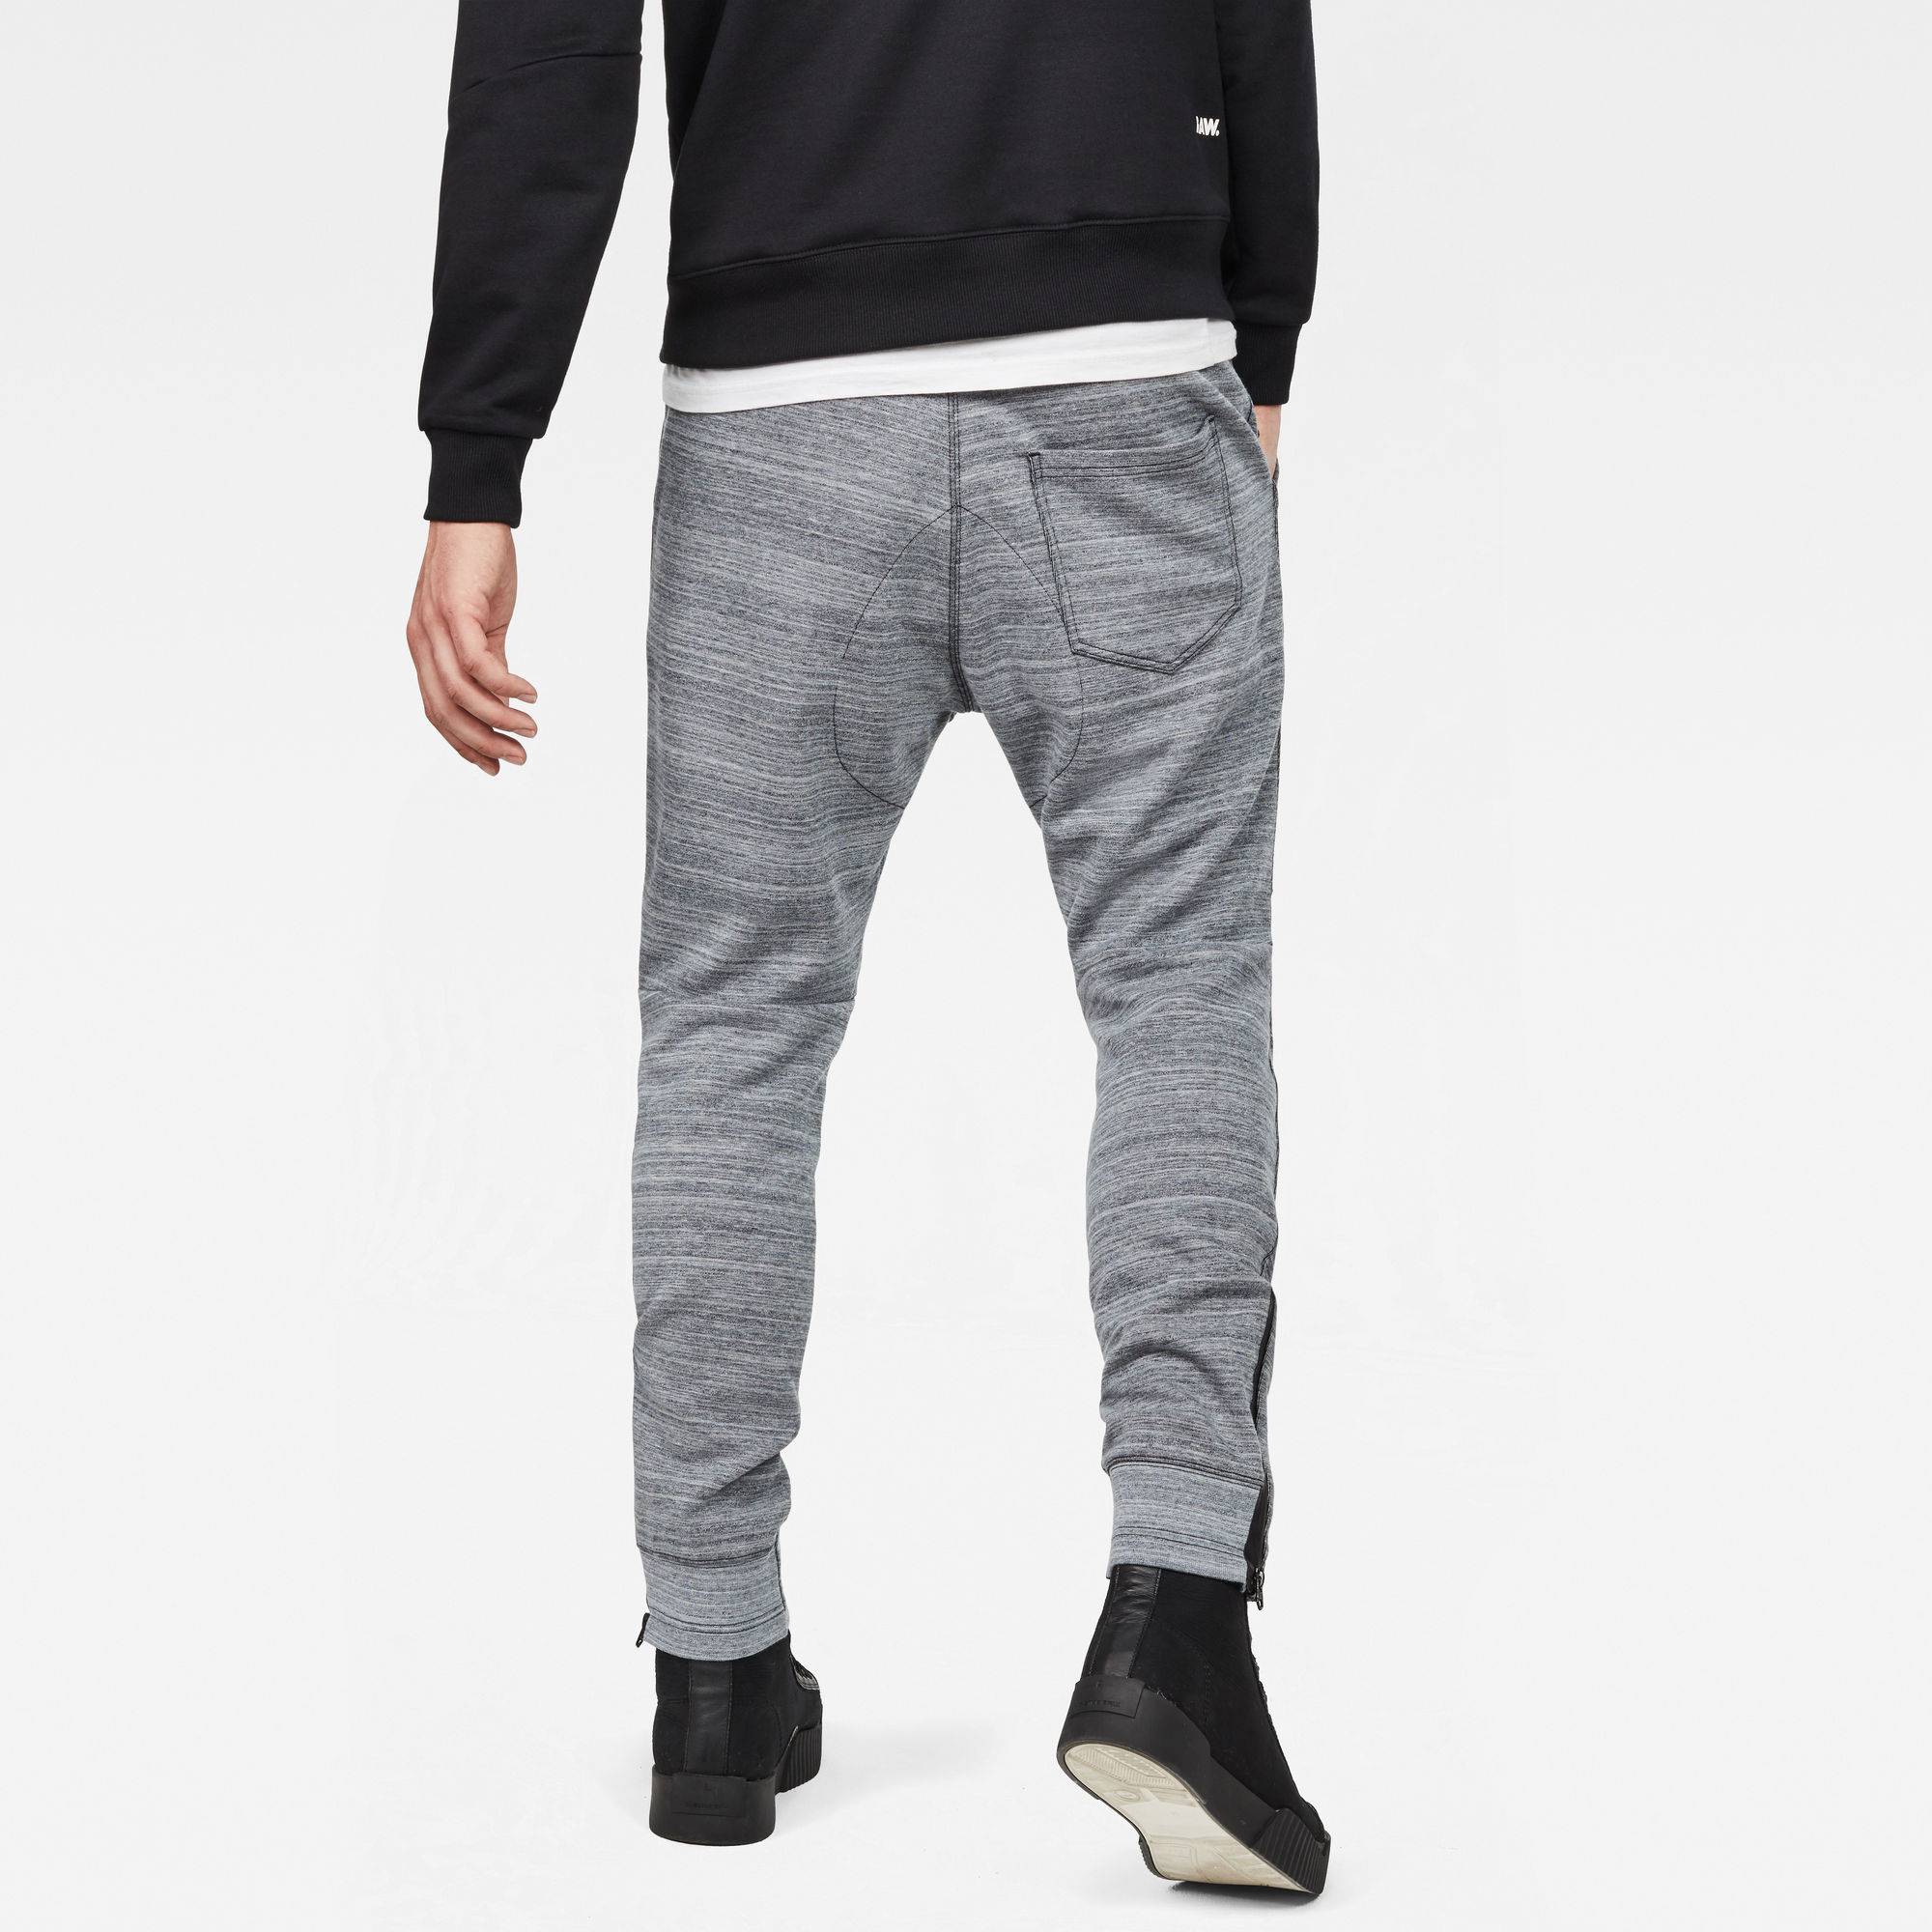 G-Star RAW 5621 Sweatpants